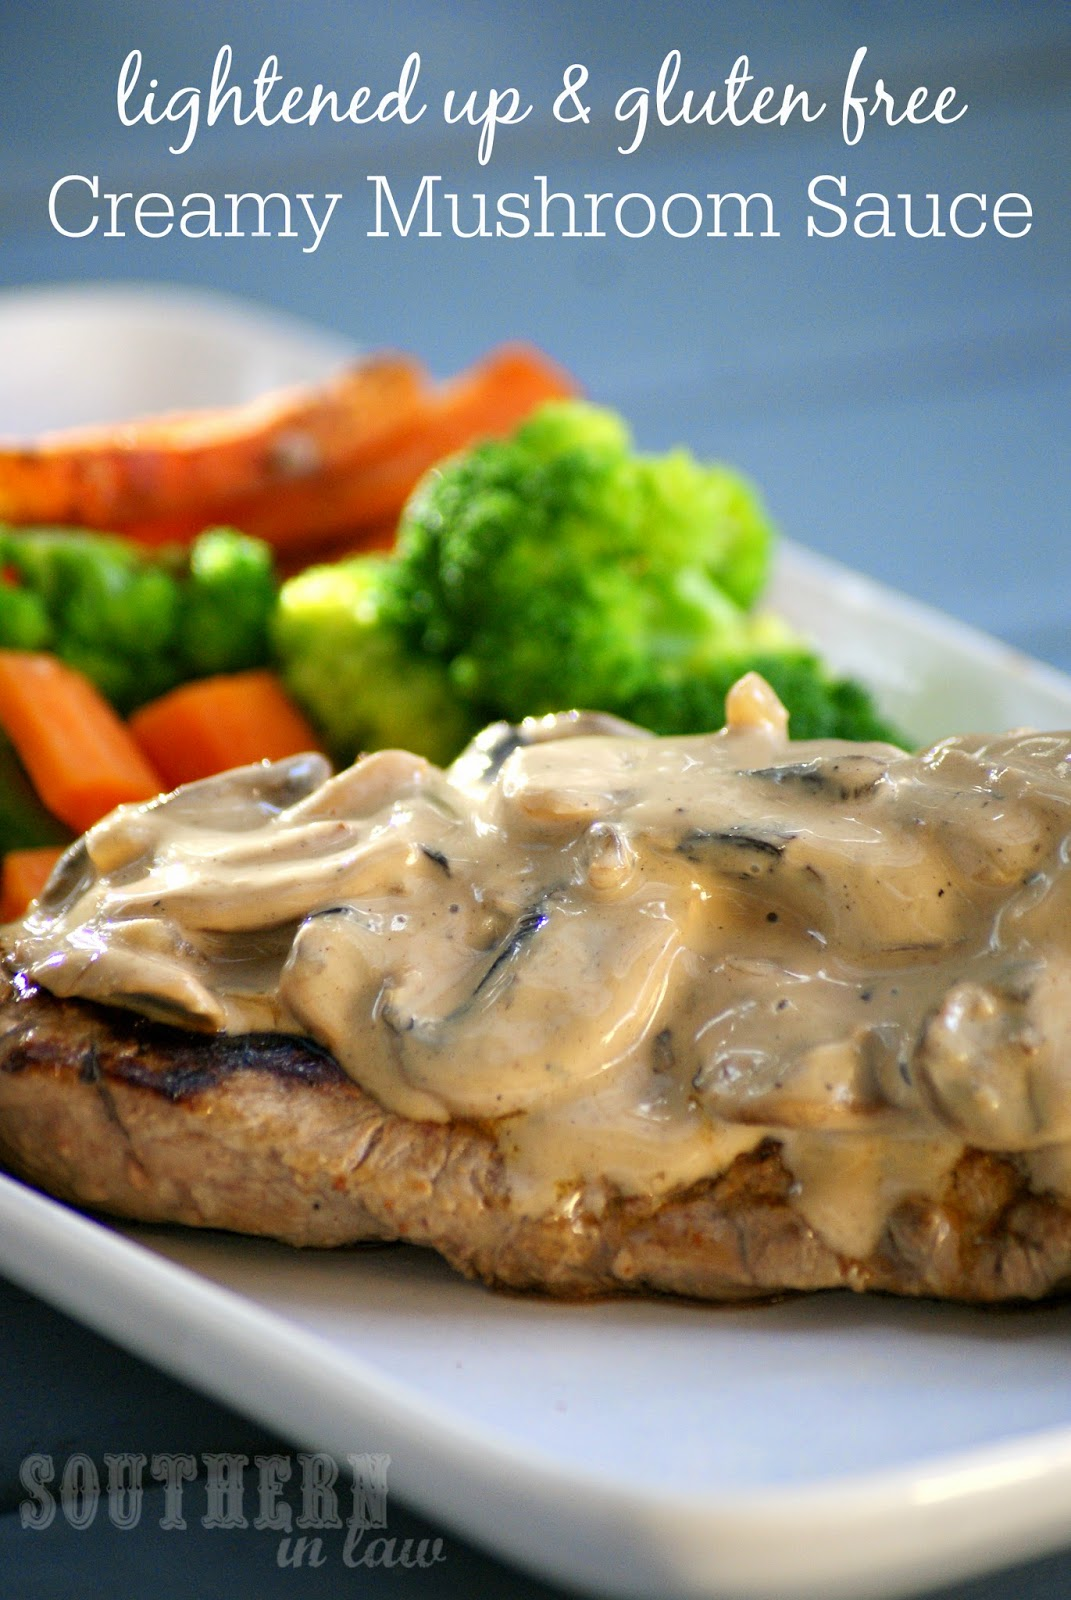 Low Fat Creamy Mushroom Sauce Recipe - low fat, gluten free, clean eating friendly, low carb, healthy, lightened up